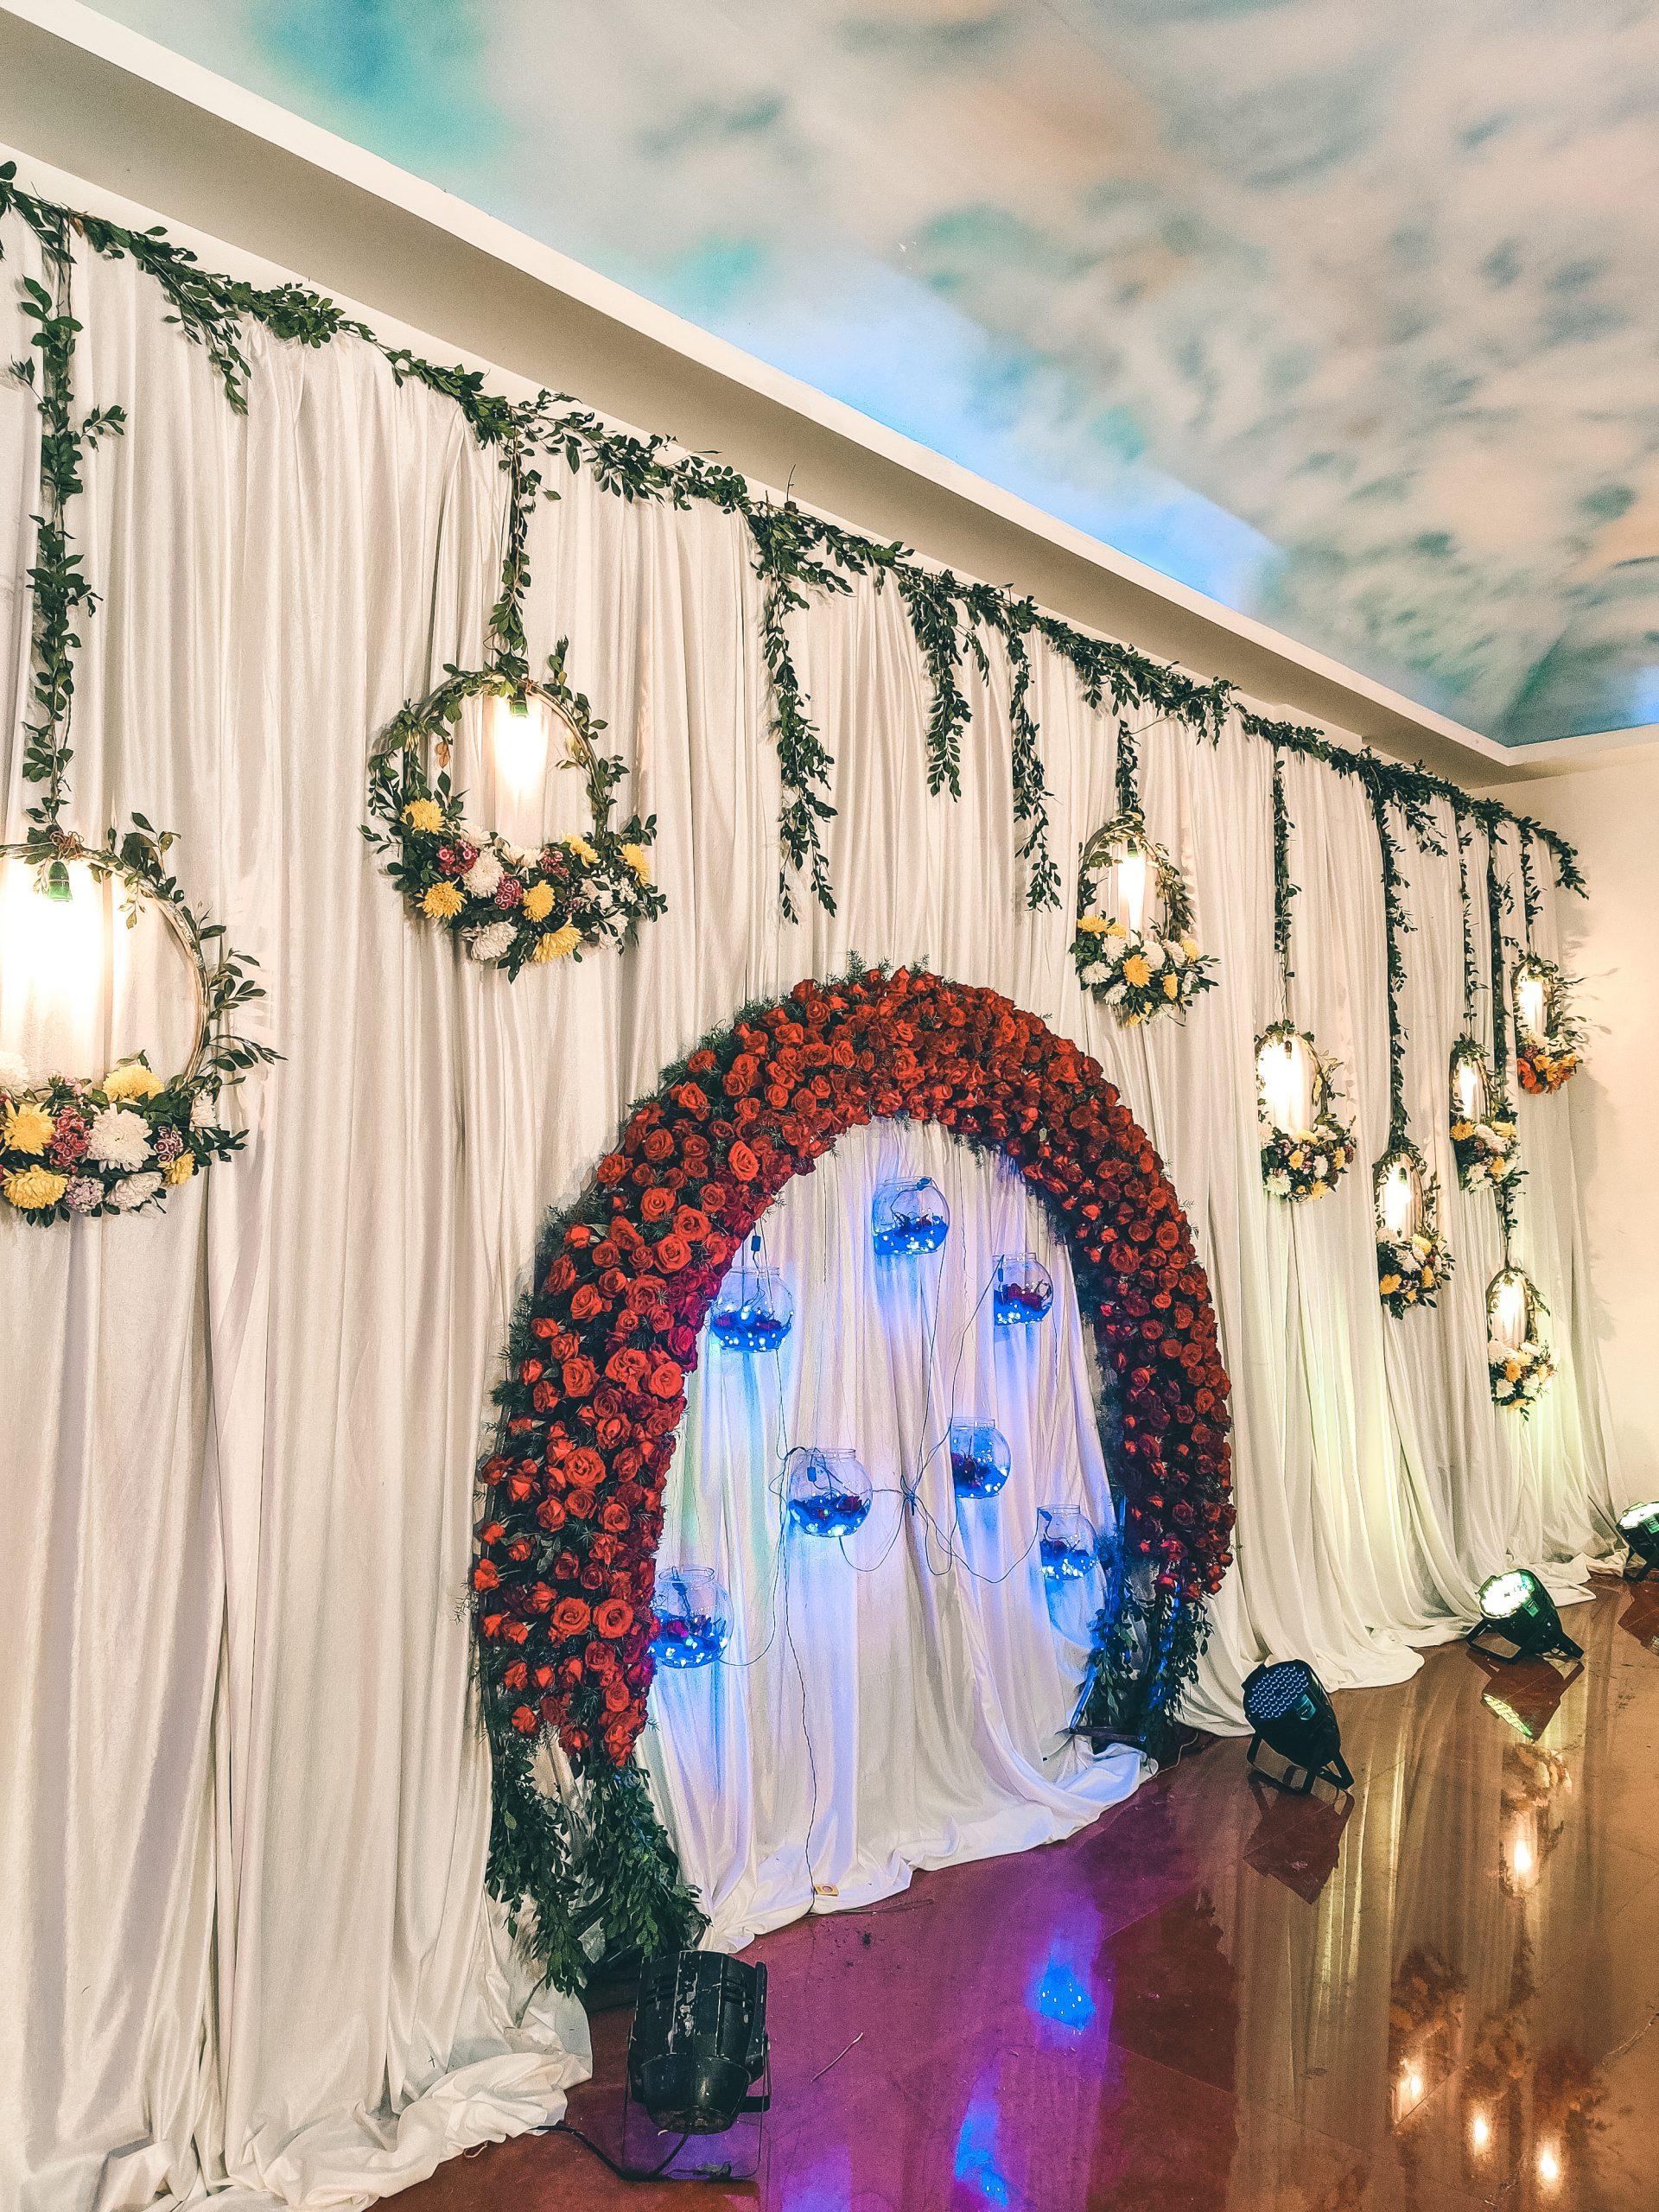 Decorated wedding stage